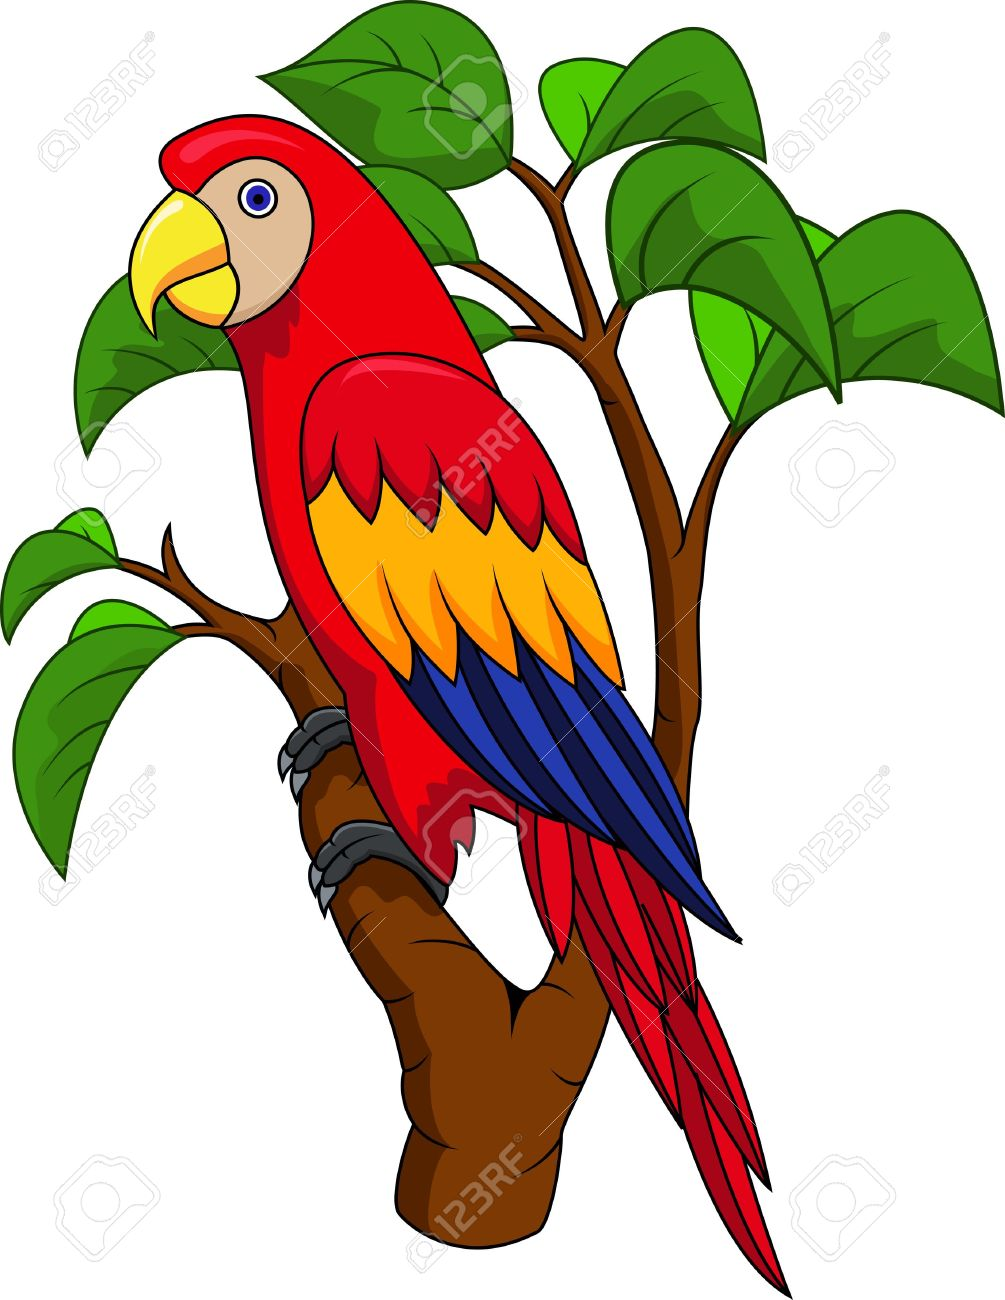 Blue Yellow Parrot Stock Vector Illustration And Royalty Free Blue